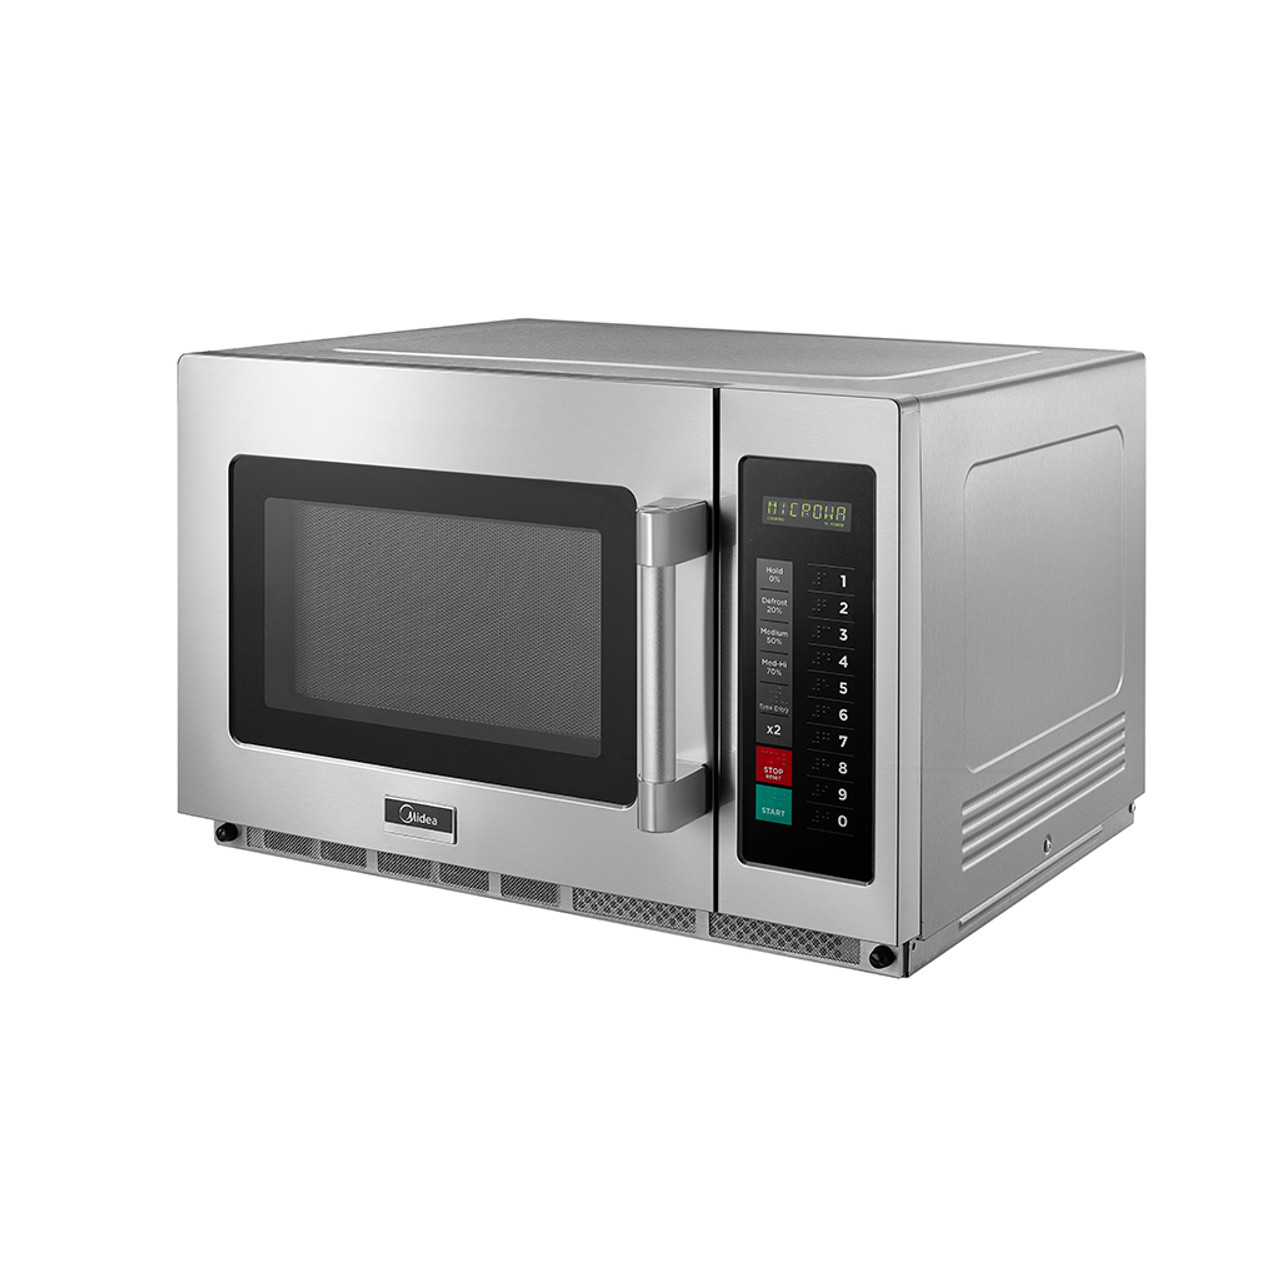 Stainless Steel Midea 1034N0A Commercial Microwave